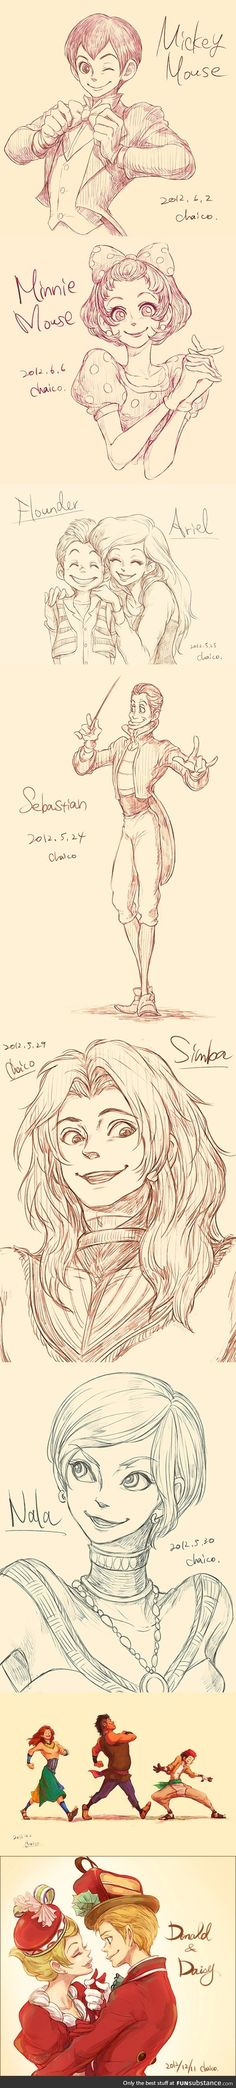 If Disney's Animal Characters Were Drawn As Humans...